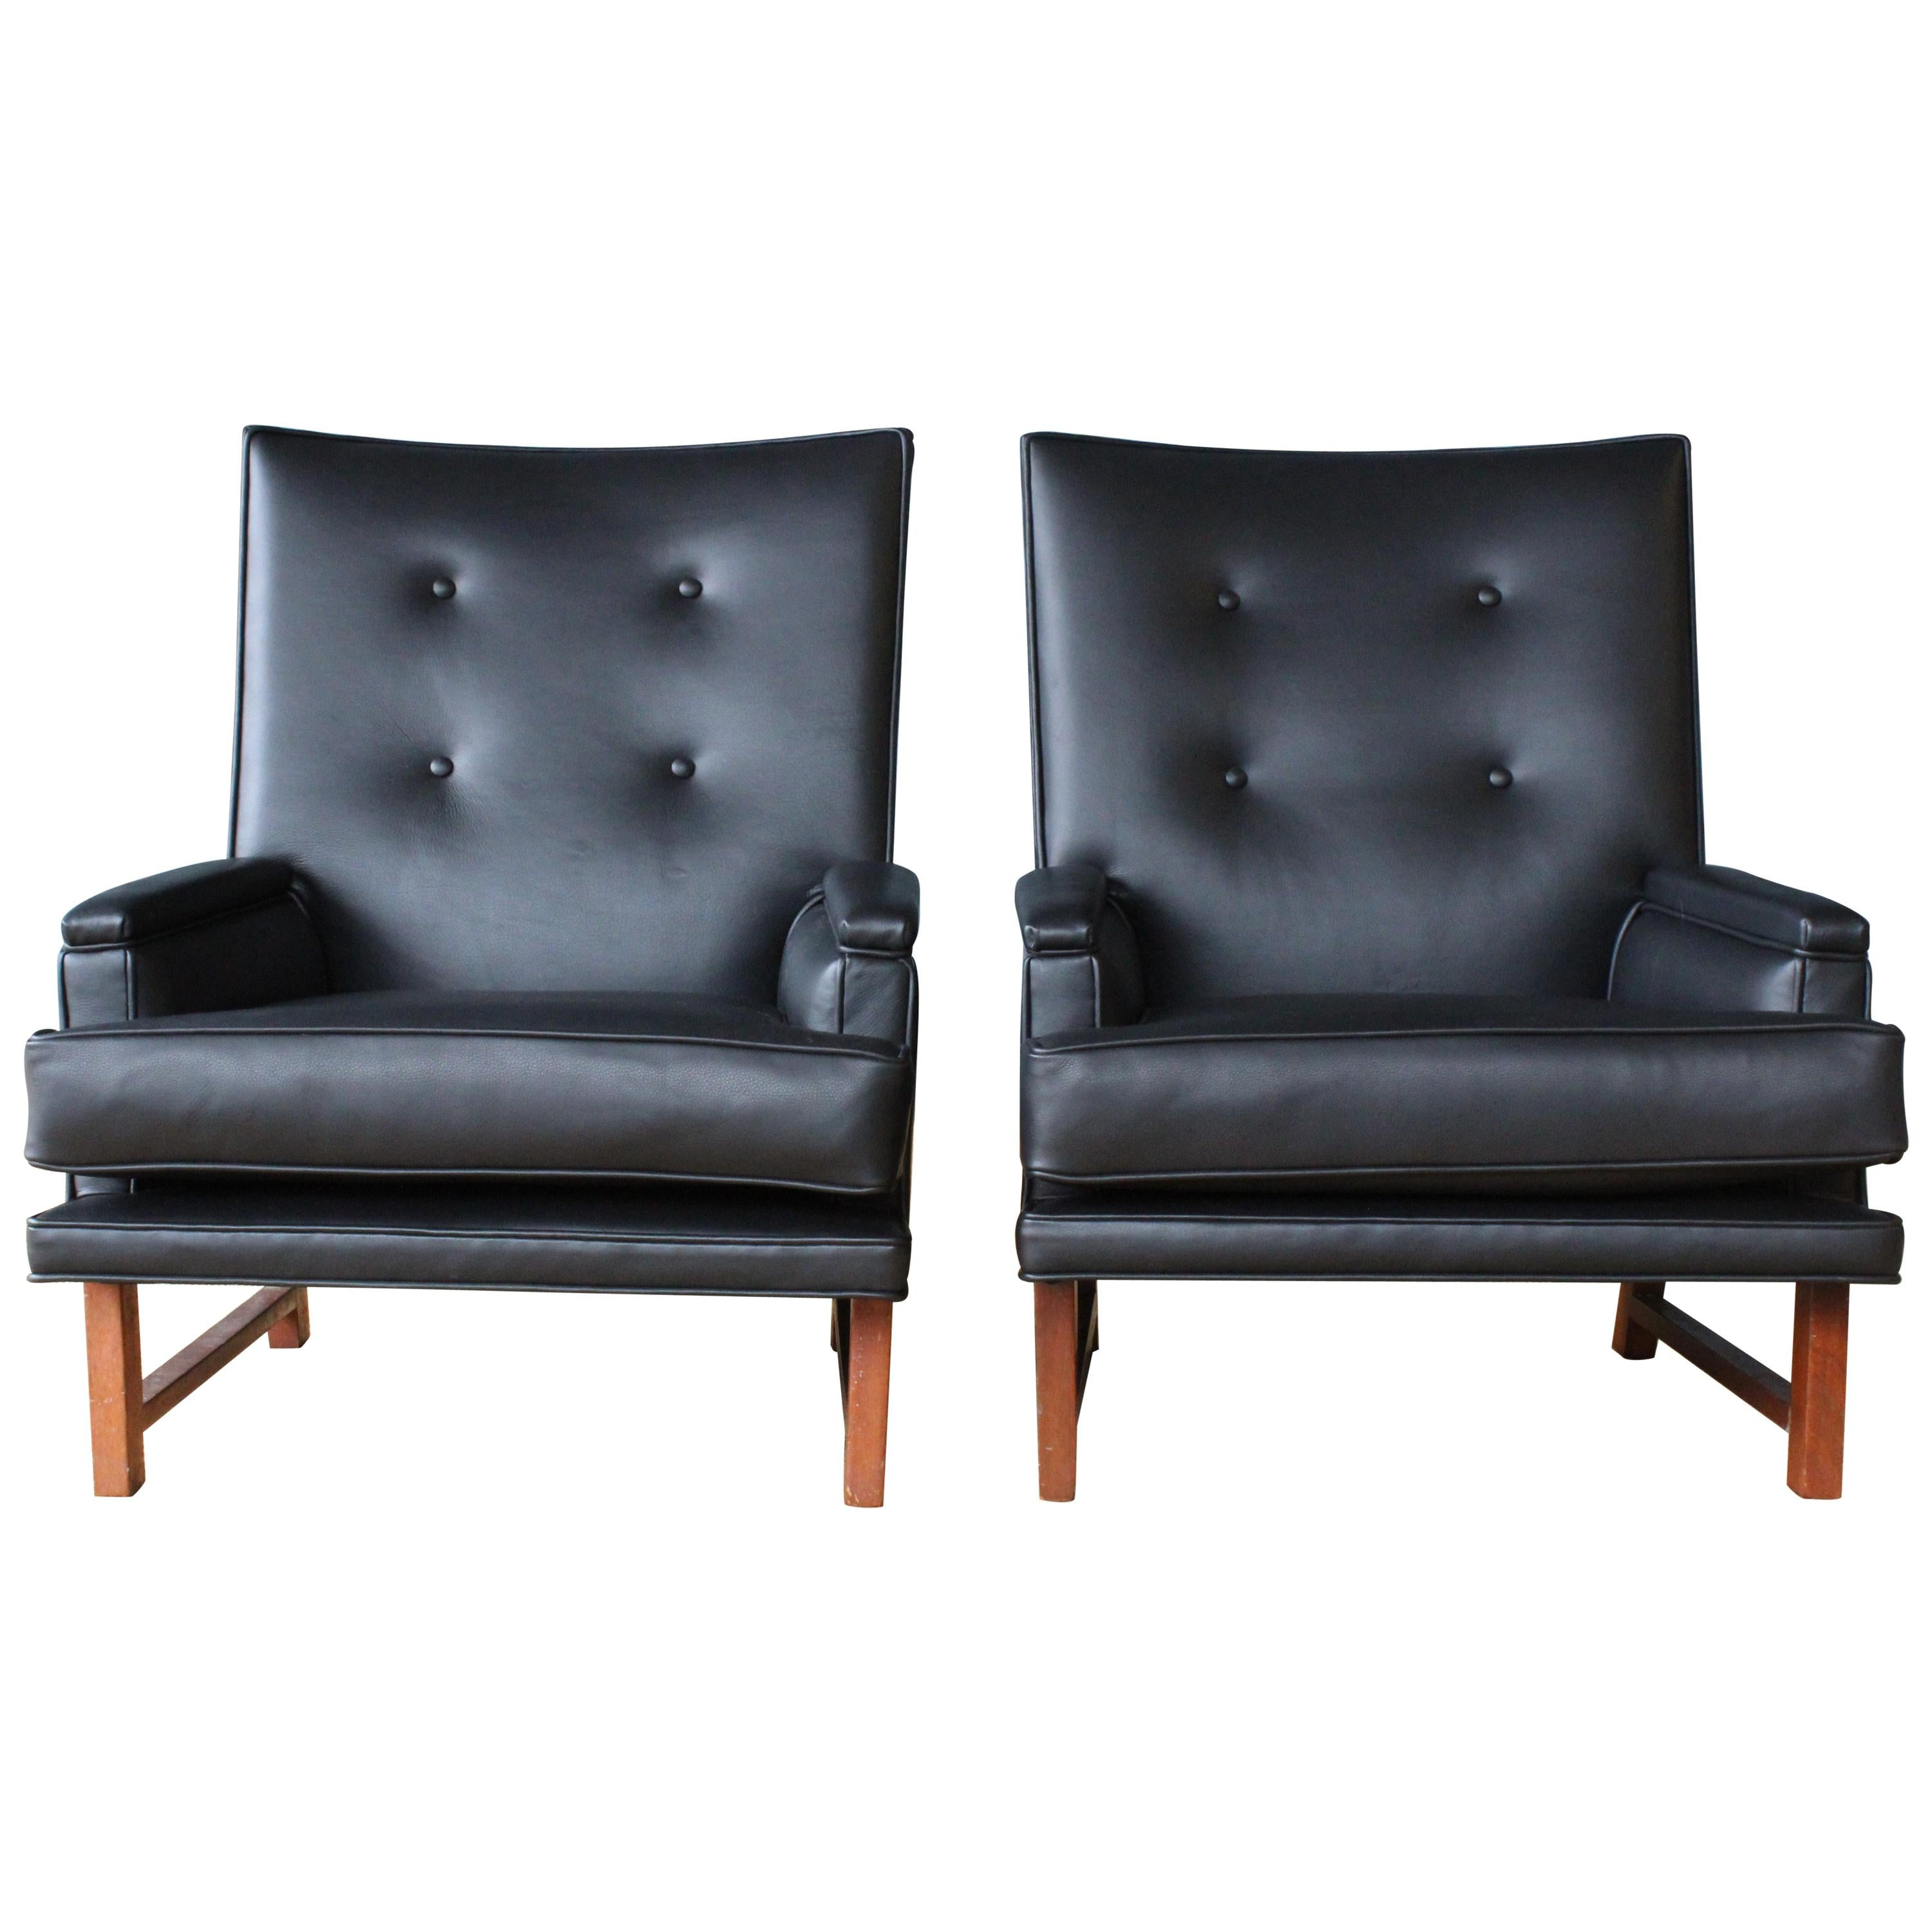 Pair of Leather Armchairs by Edward Wormley for Dunbar, USA, 1950s